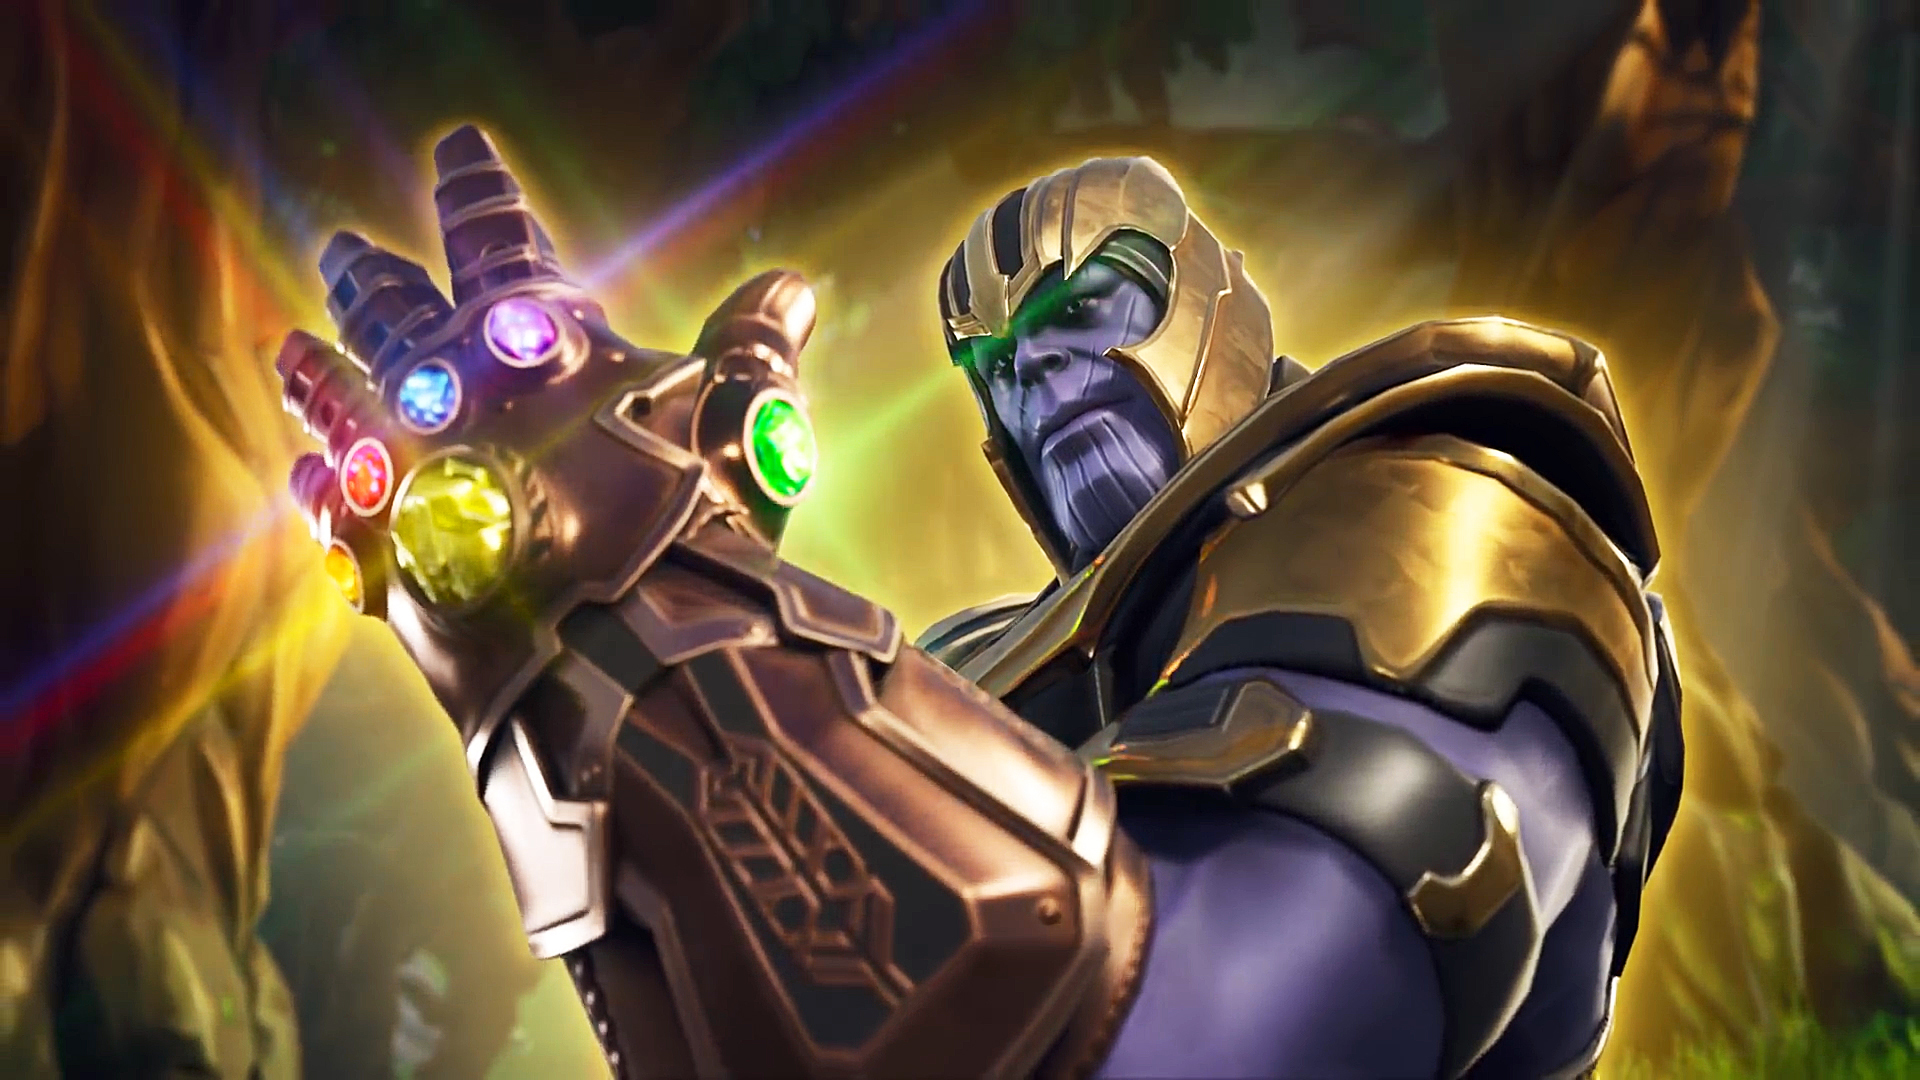 Fortnites Infinity Gauntlet Thanos Mode Is Now Live   GameSpot 1920x1080